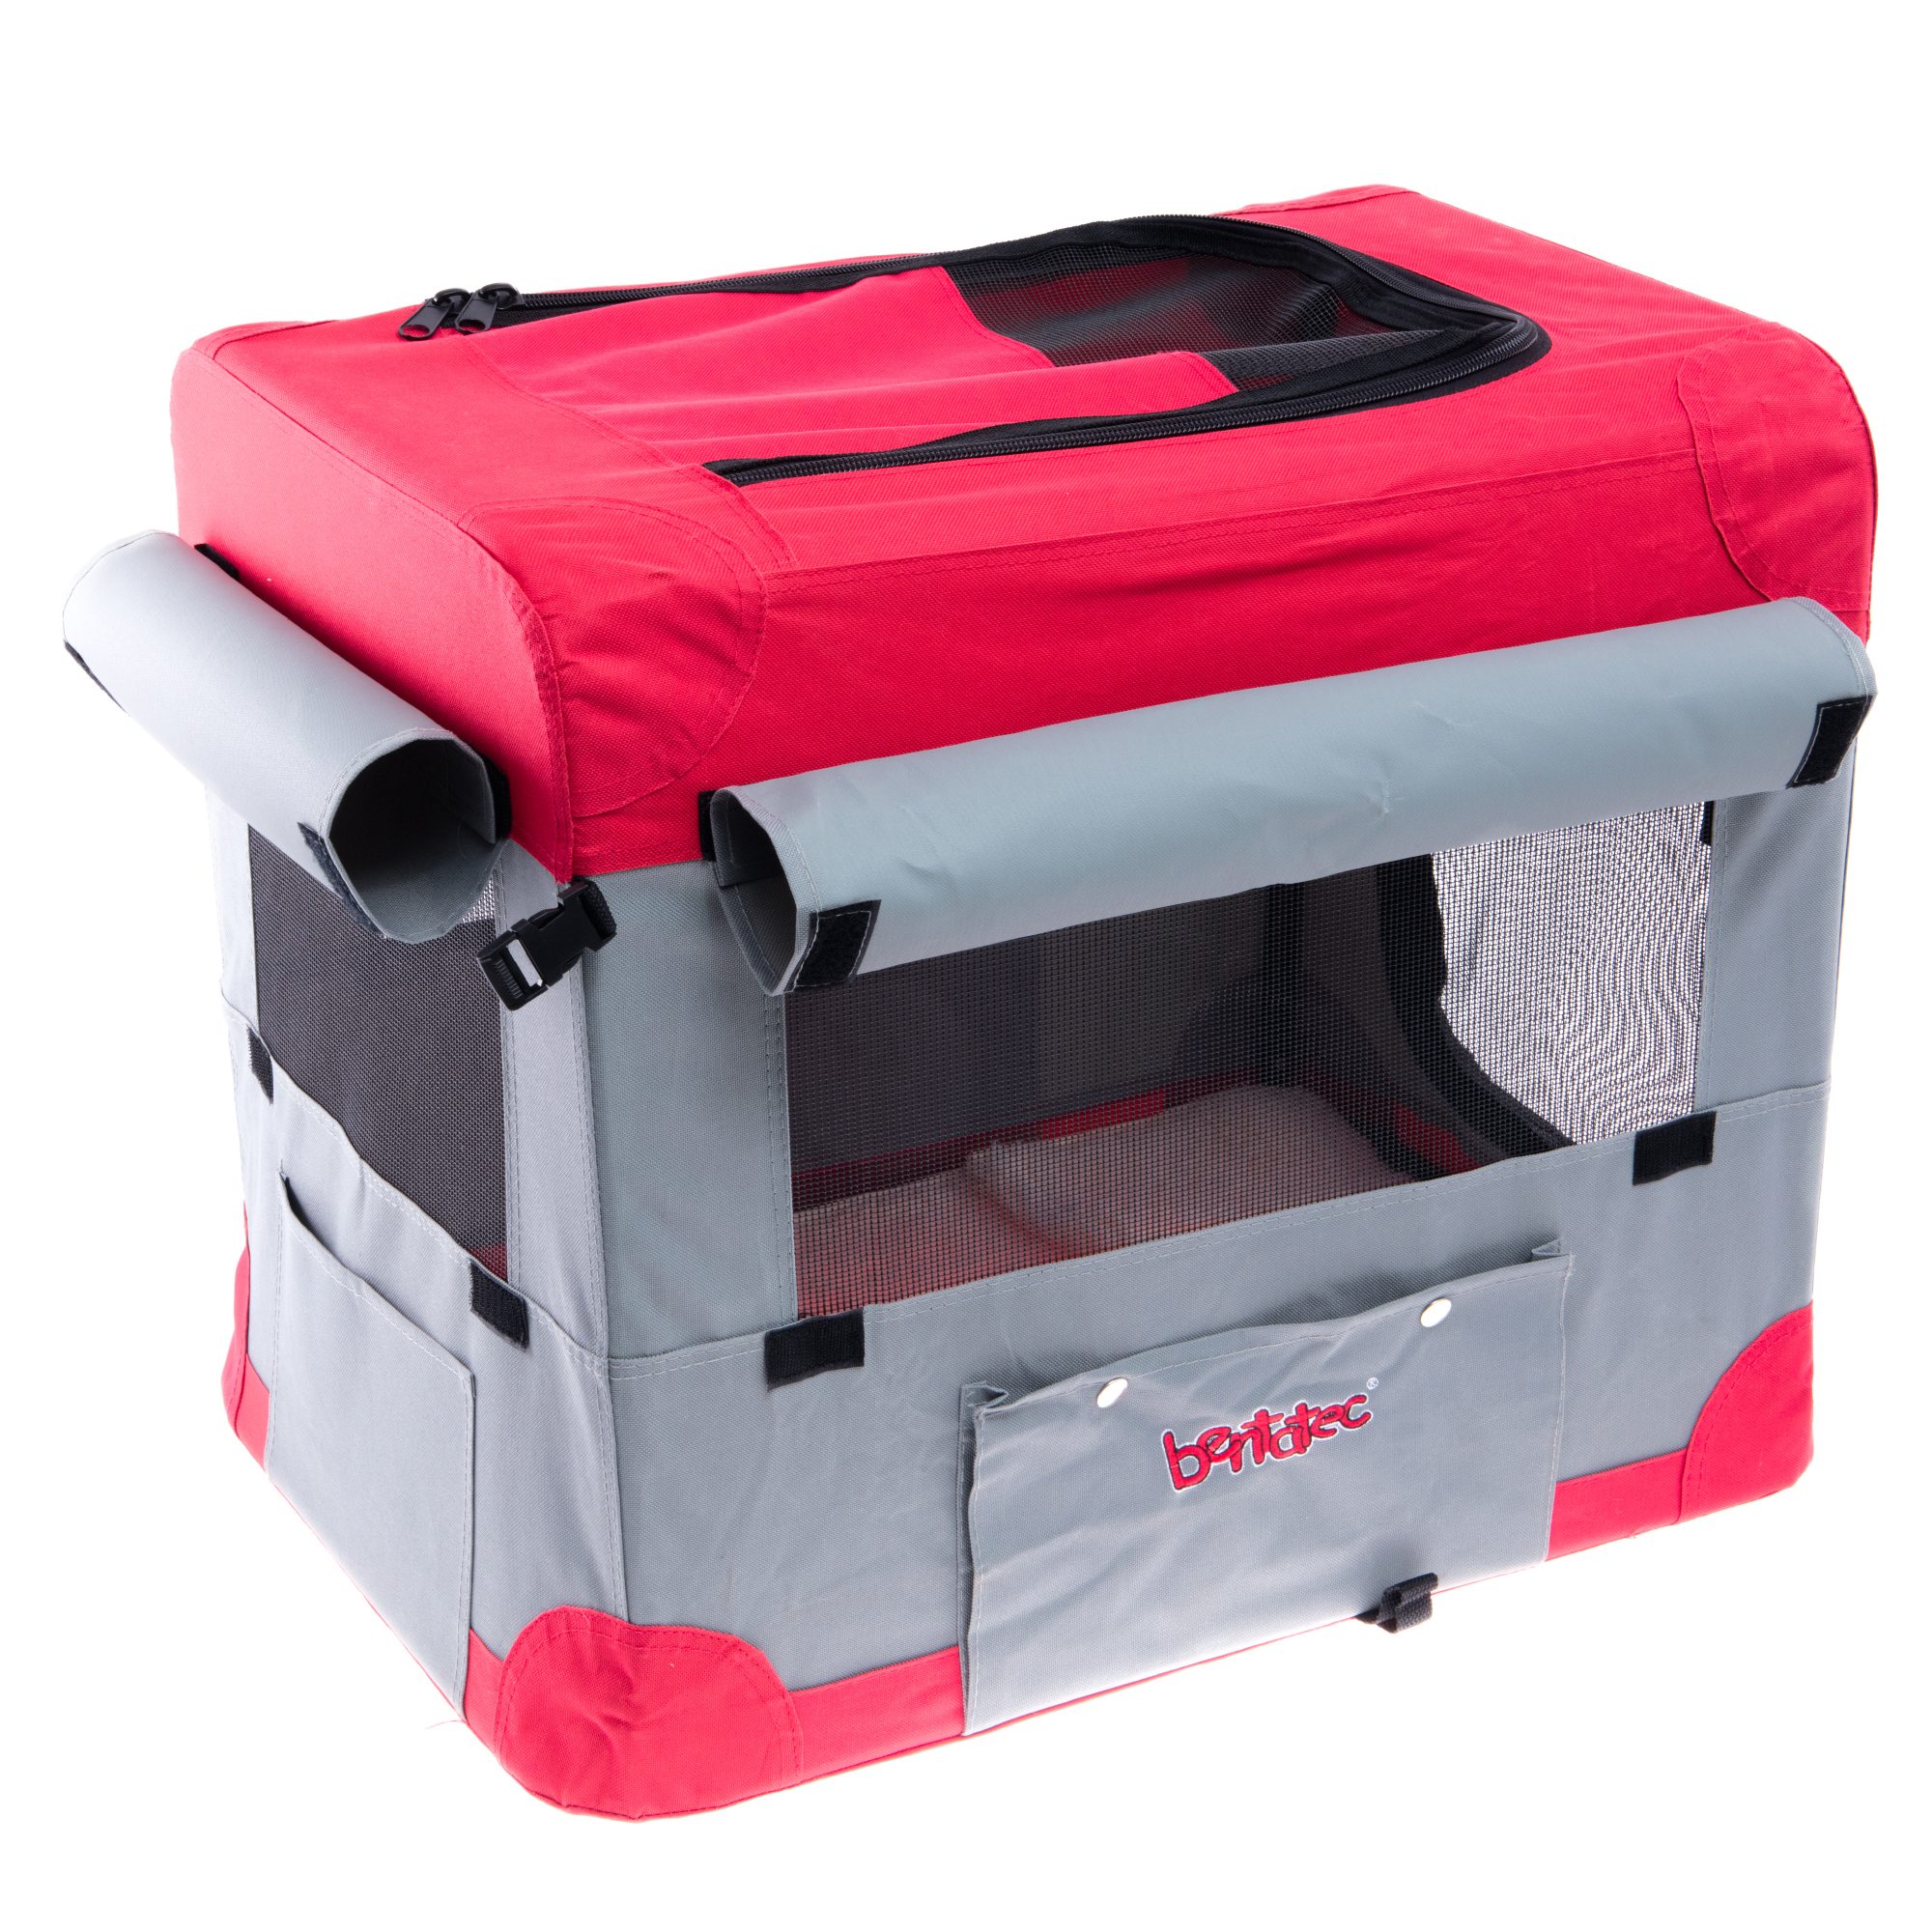 Drybed Hundetransportbox Textilkennel FK 101